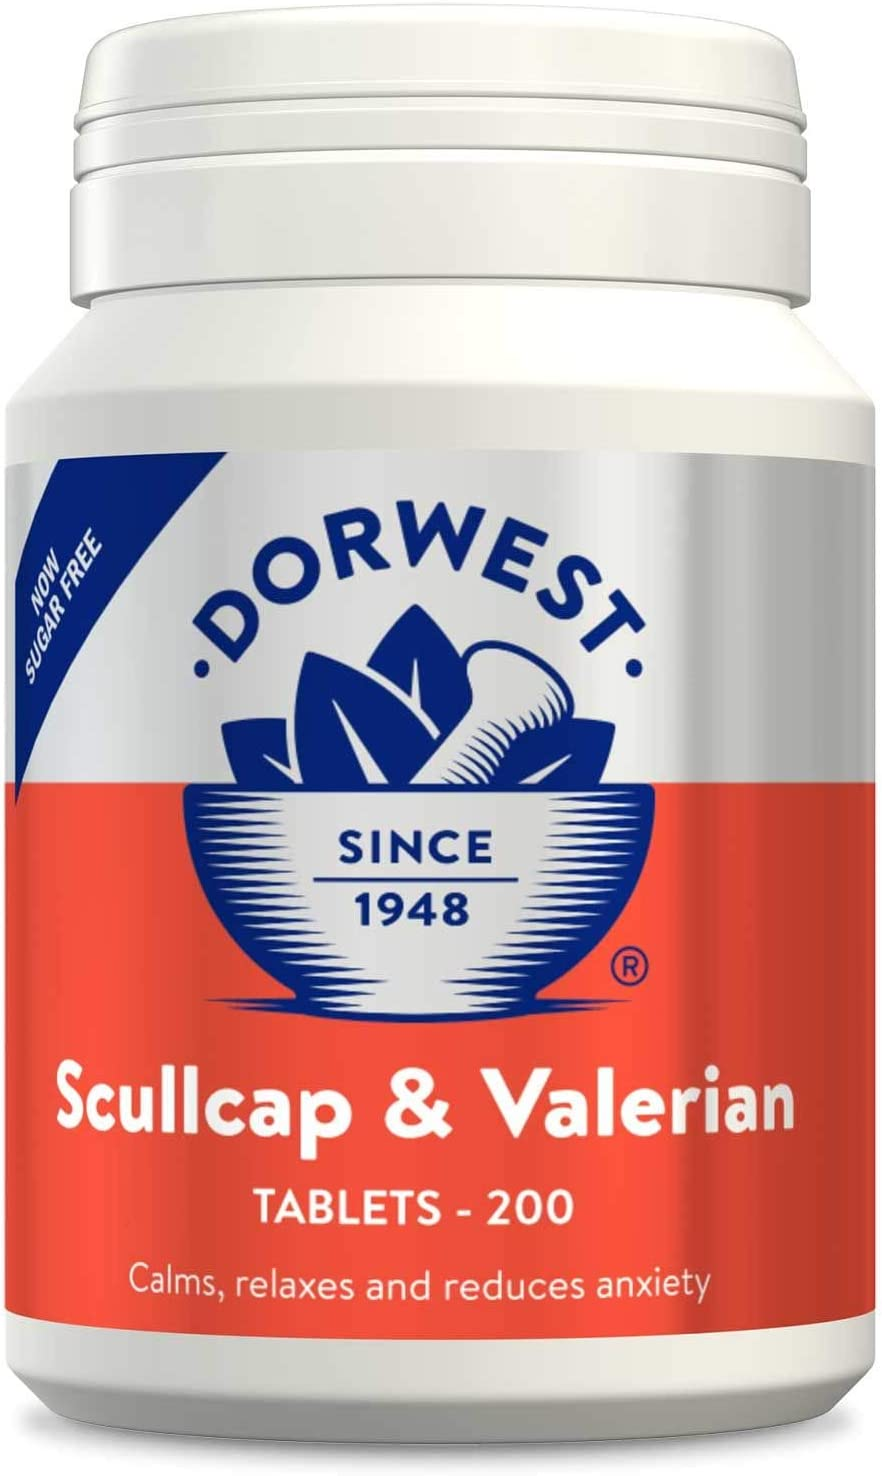 Dorwest Oakland Mall Herbs Scullcap and Valerian Dogs 5 ☆ popular 20 Tablets for Cats